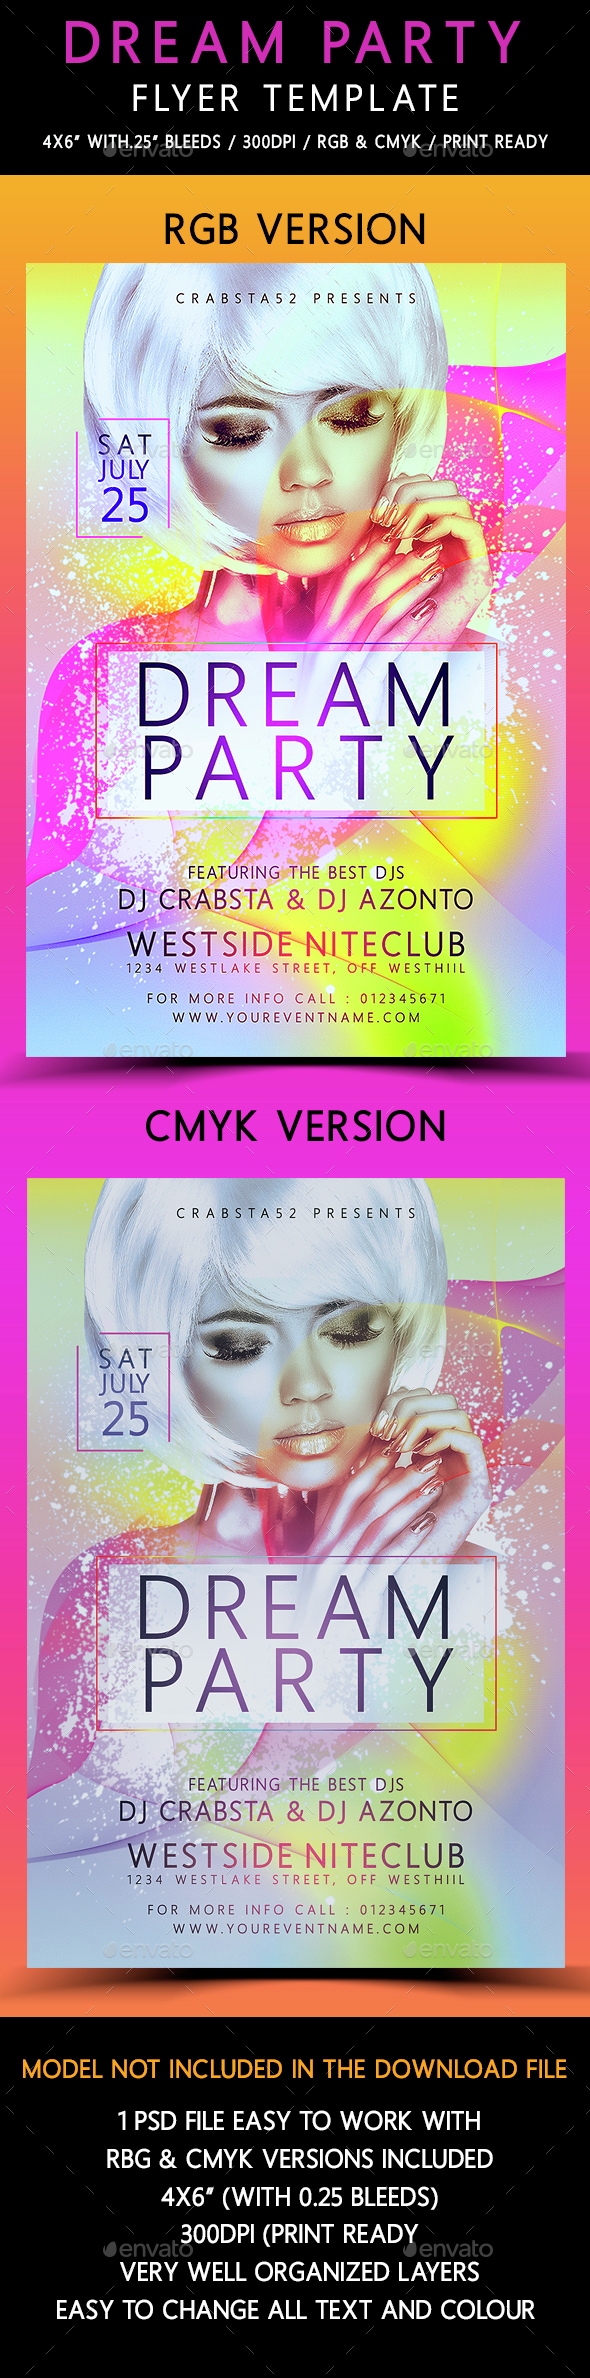 Dream Party Flyer Template  - Flyers Print Templates